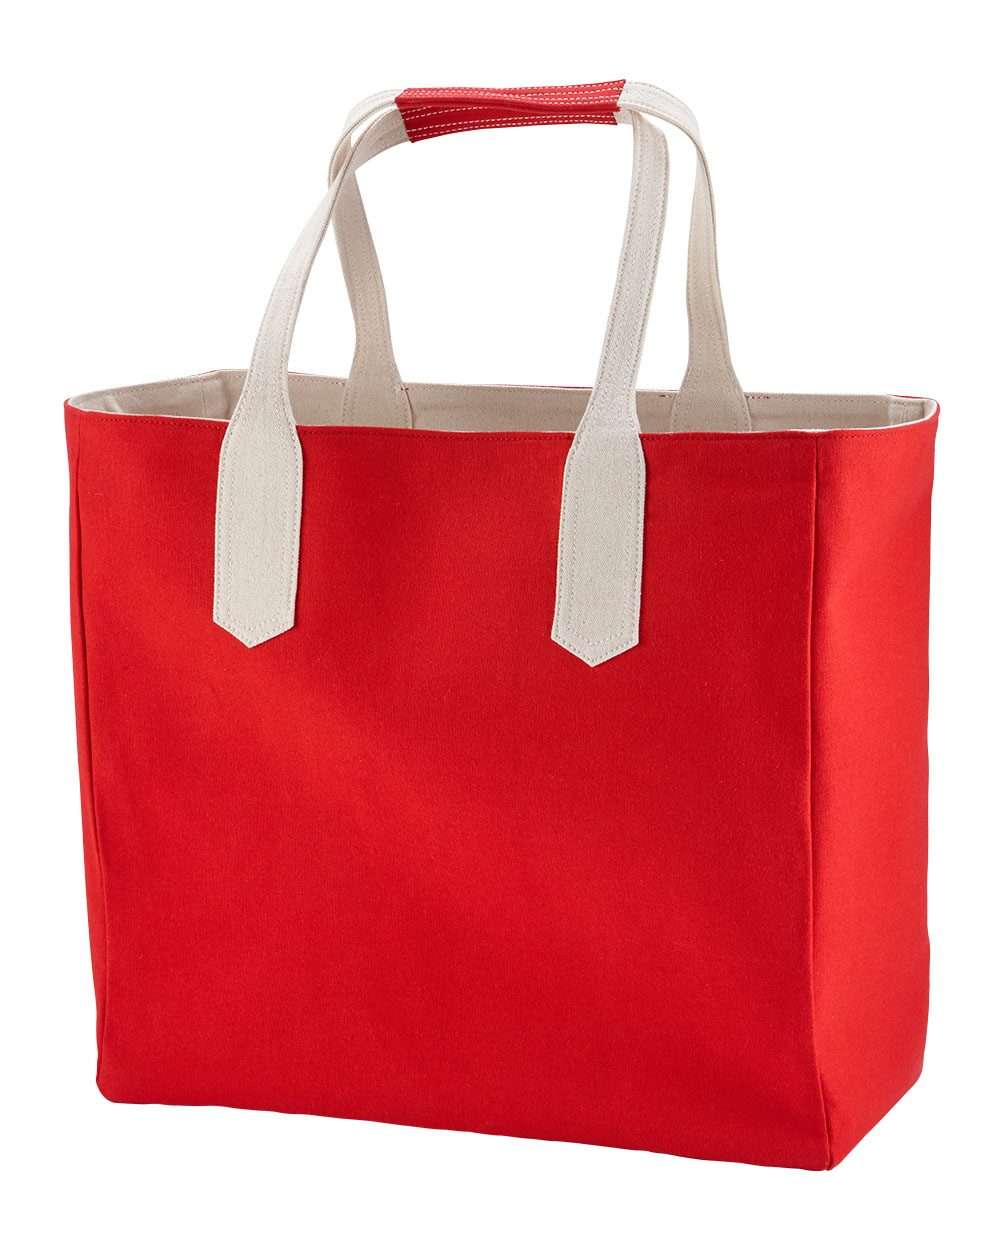 Brookson Bay BB500 - Solid Tote with Contrast Handles